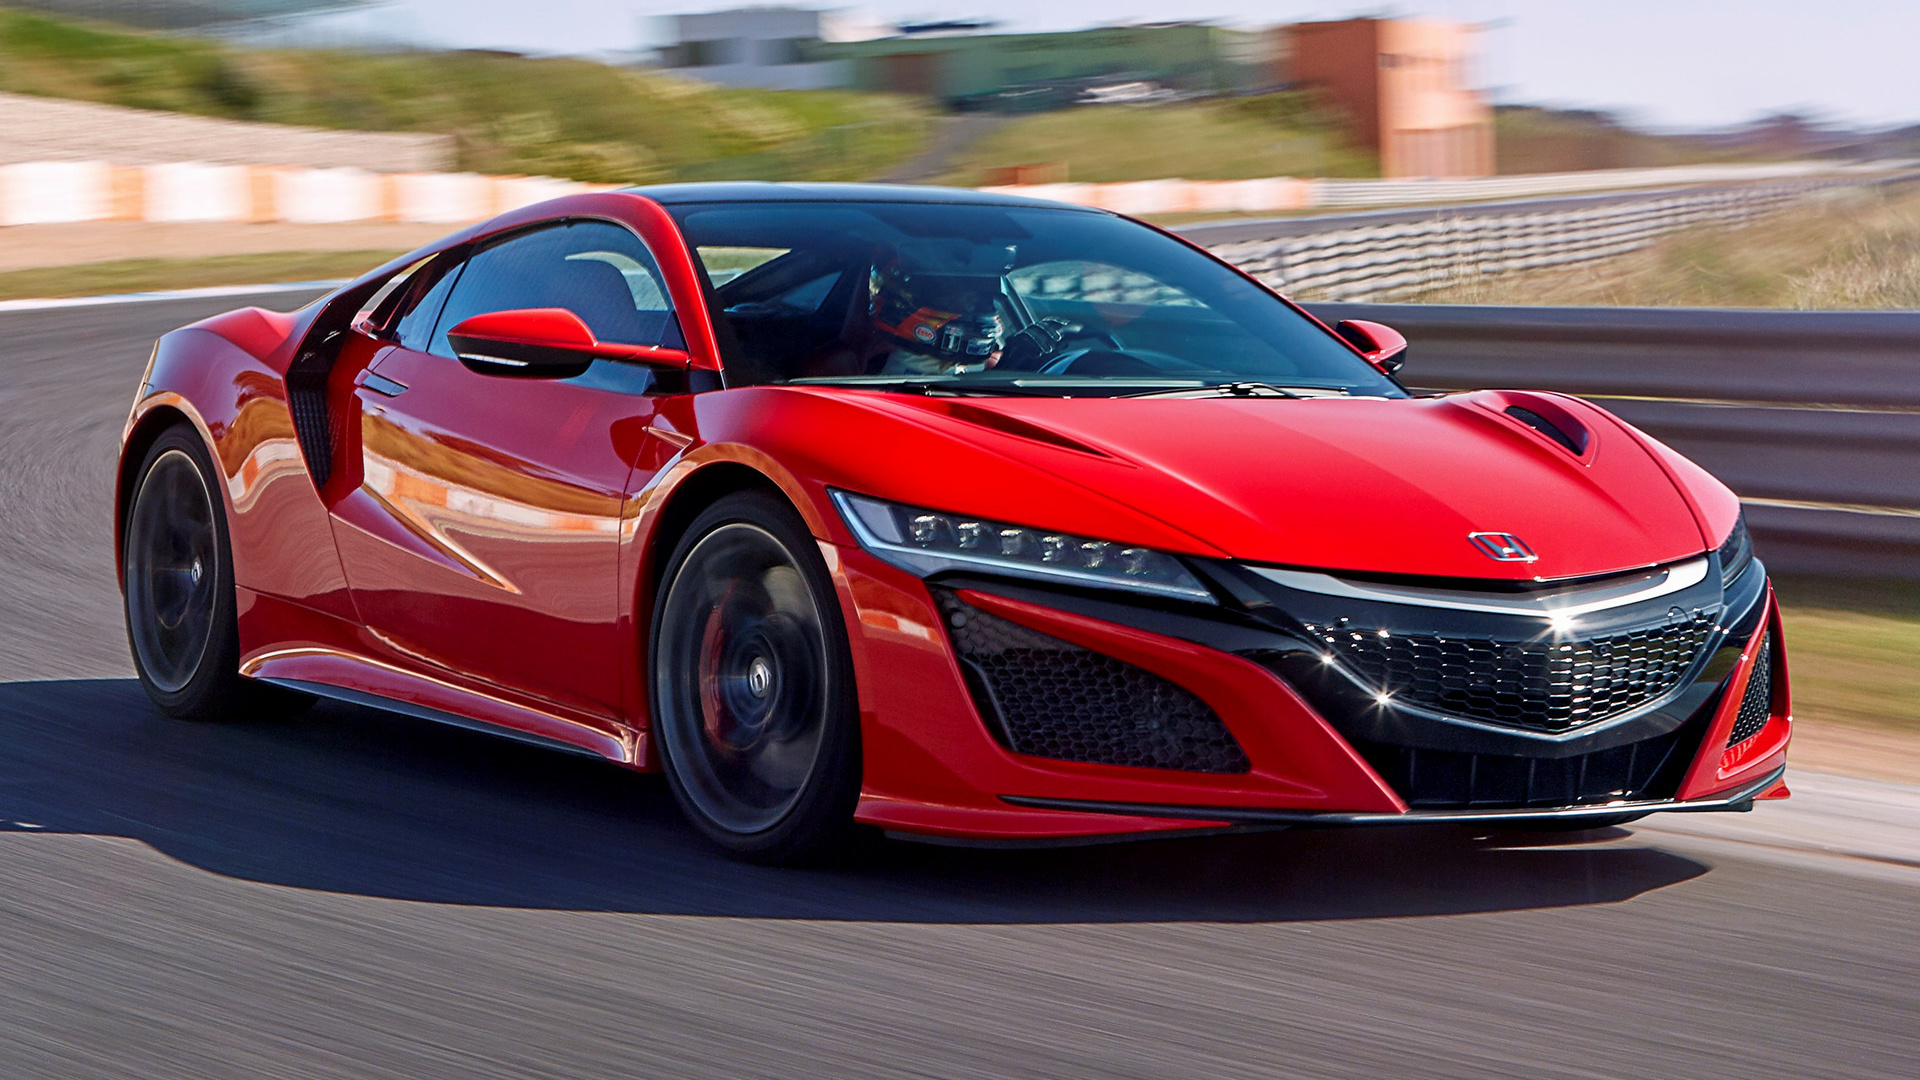 Honda nsx 2016 wallpapers and hd images car pixel hd 169 voltagebd Gallery